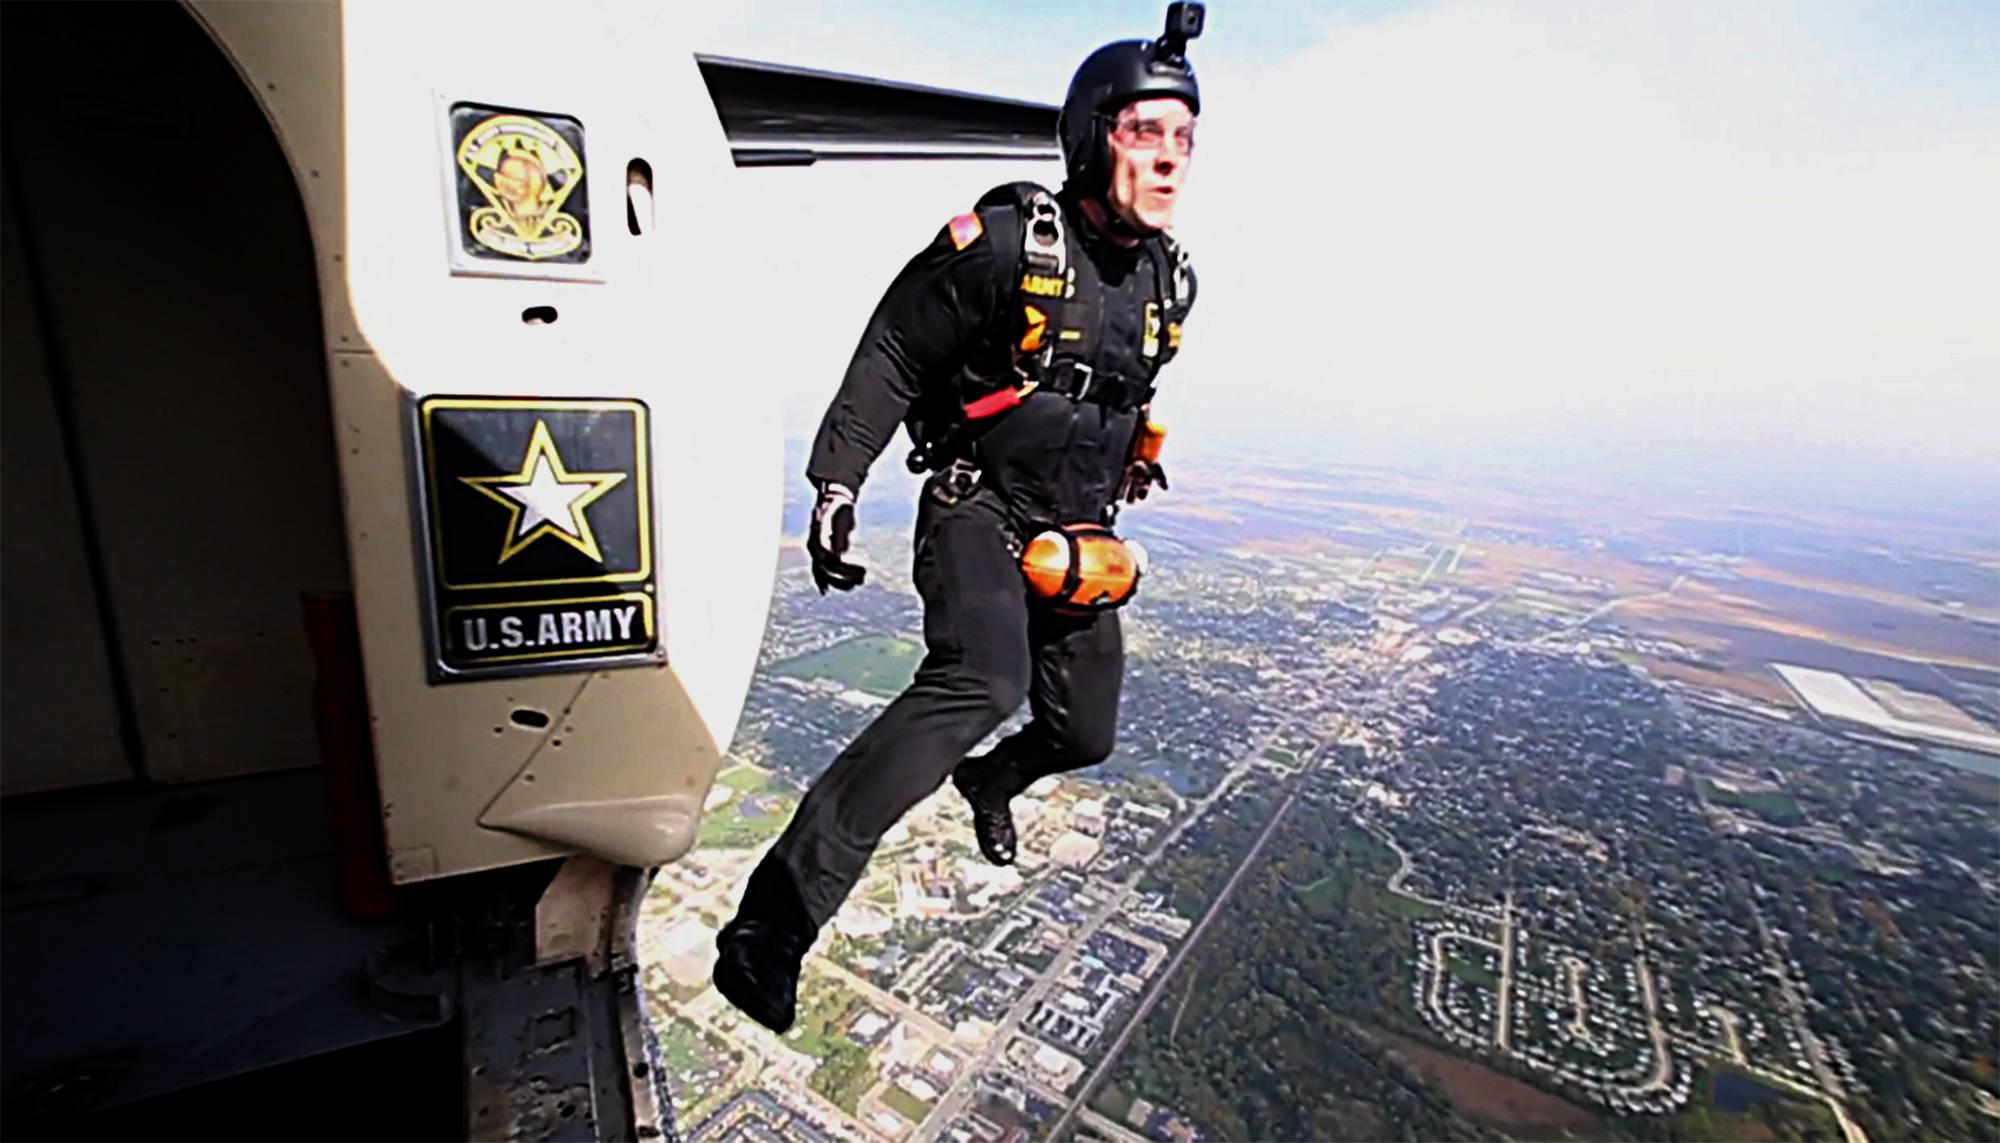 U.S. Army Golden Knight parachutist SFC Keith Pierce leaps toward Huskie Stadium in DeKalb to deliver the game ball for NIU's 112th homecoming game Saturday.